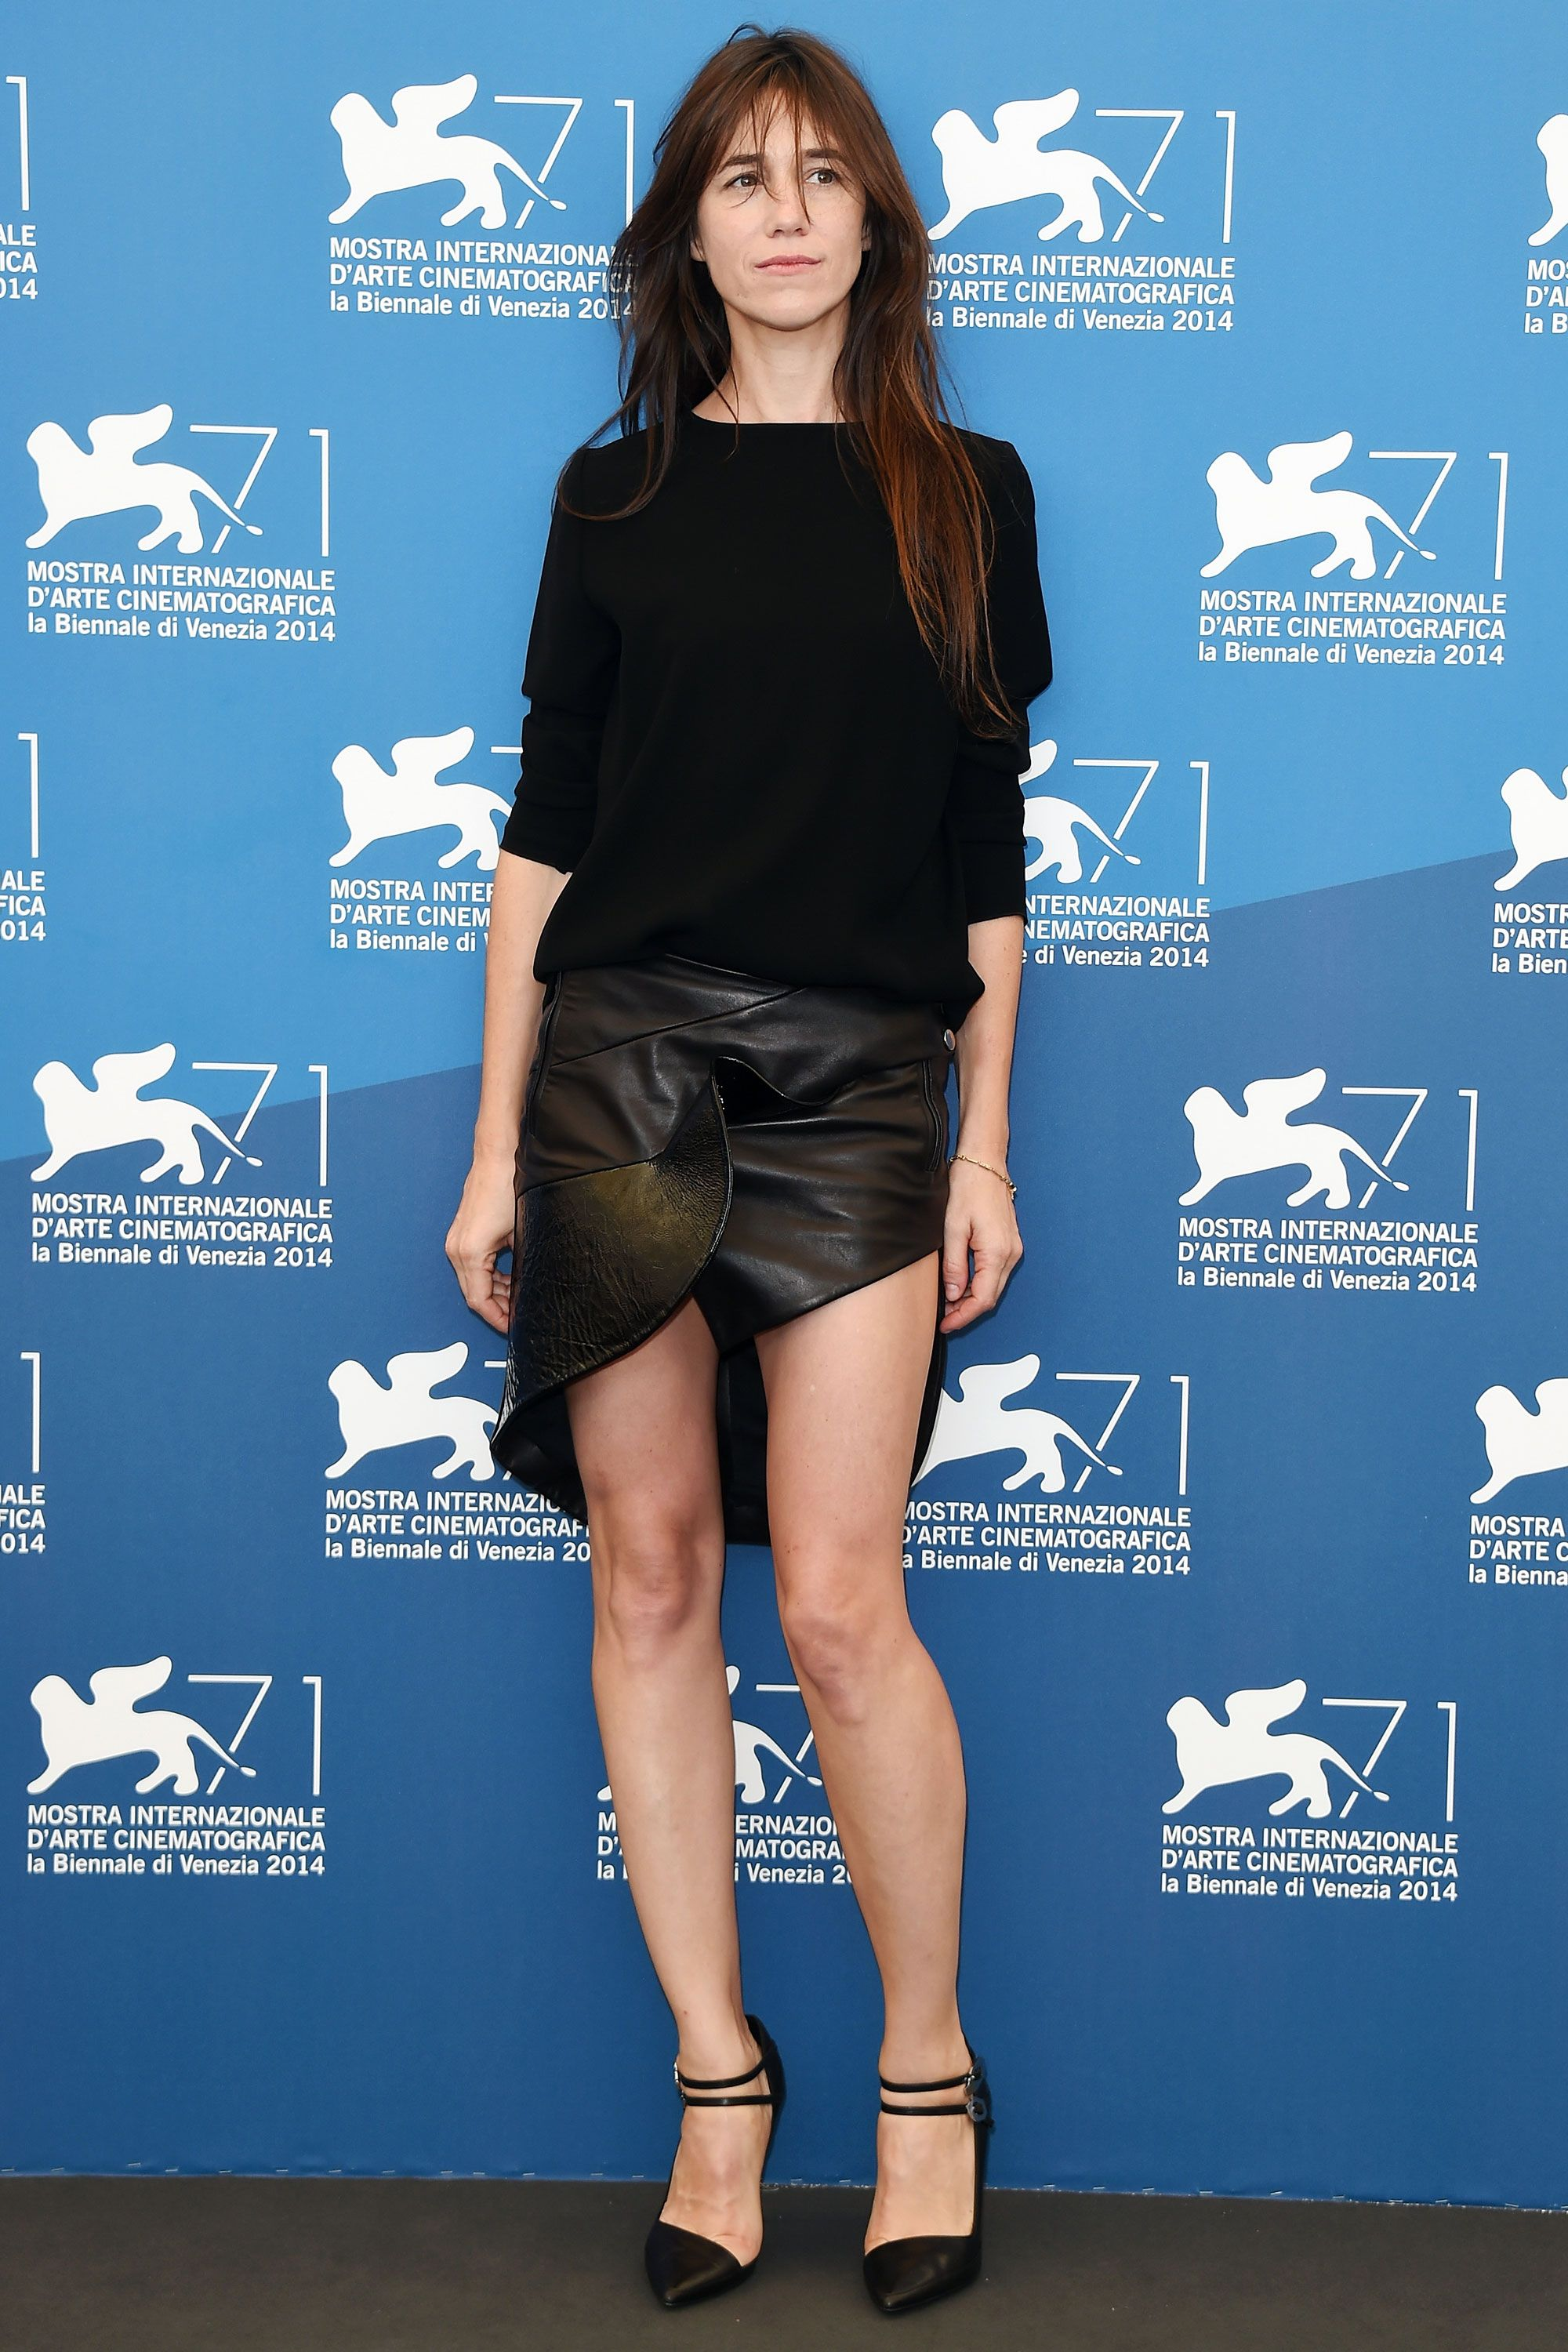 Celebrity Charlotte Gainsbourg nudes (92 foto and video), Ass, Sideboobs, Twitter, legs 2015